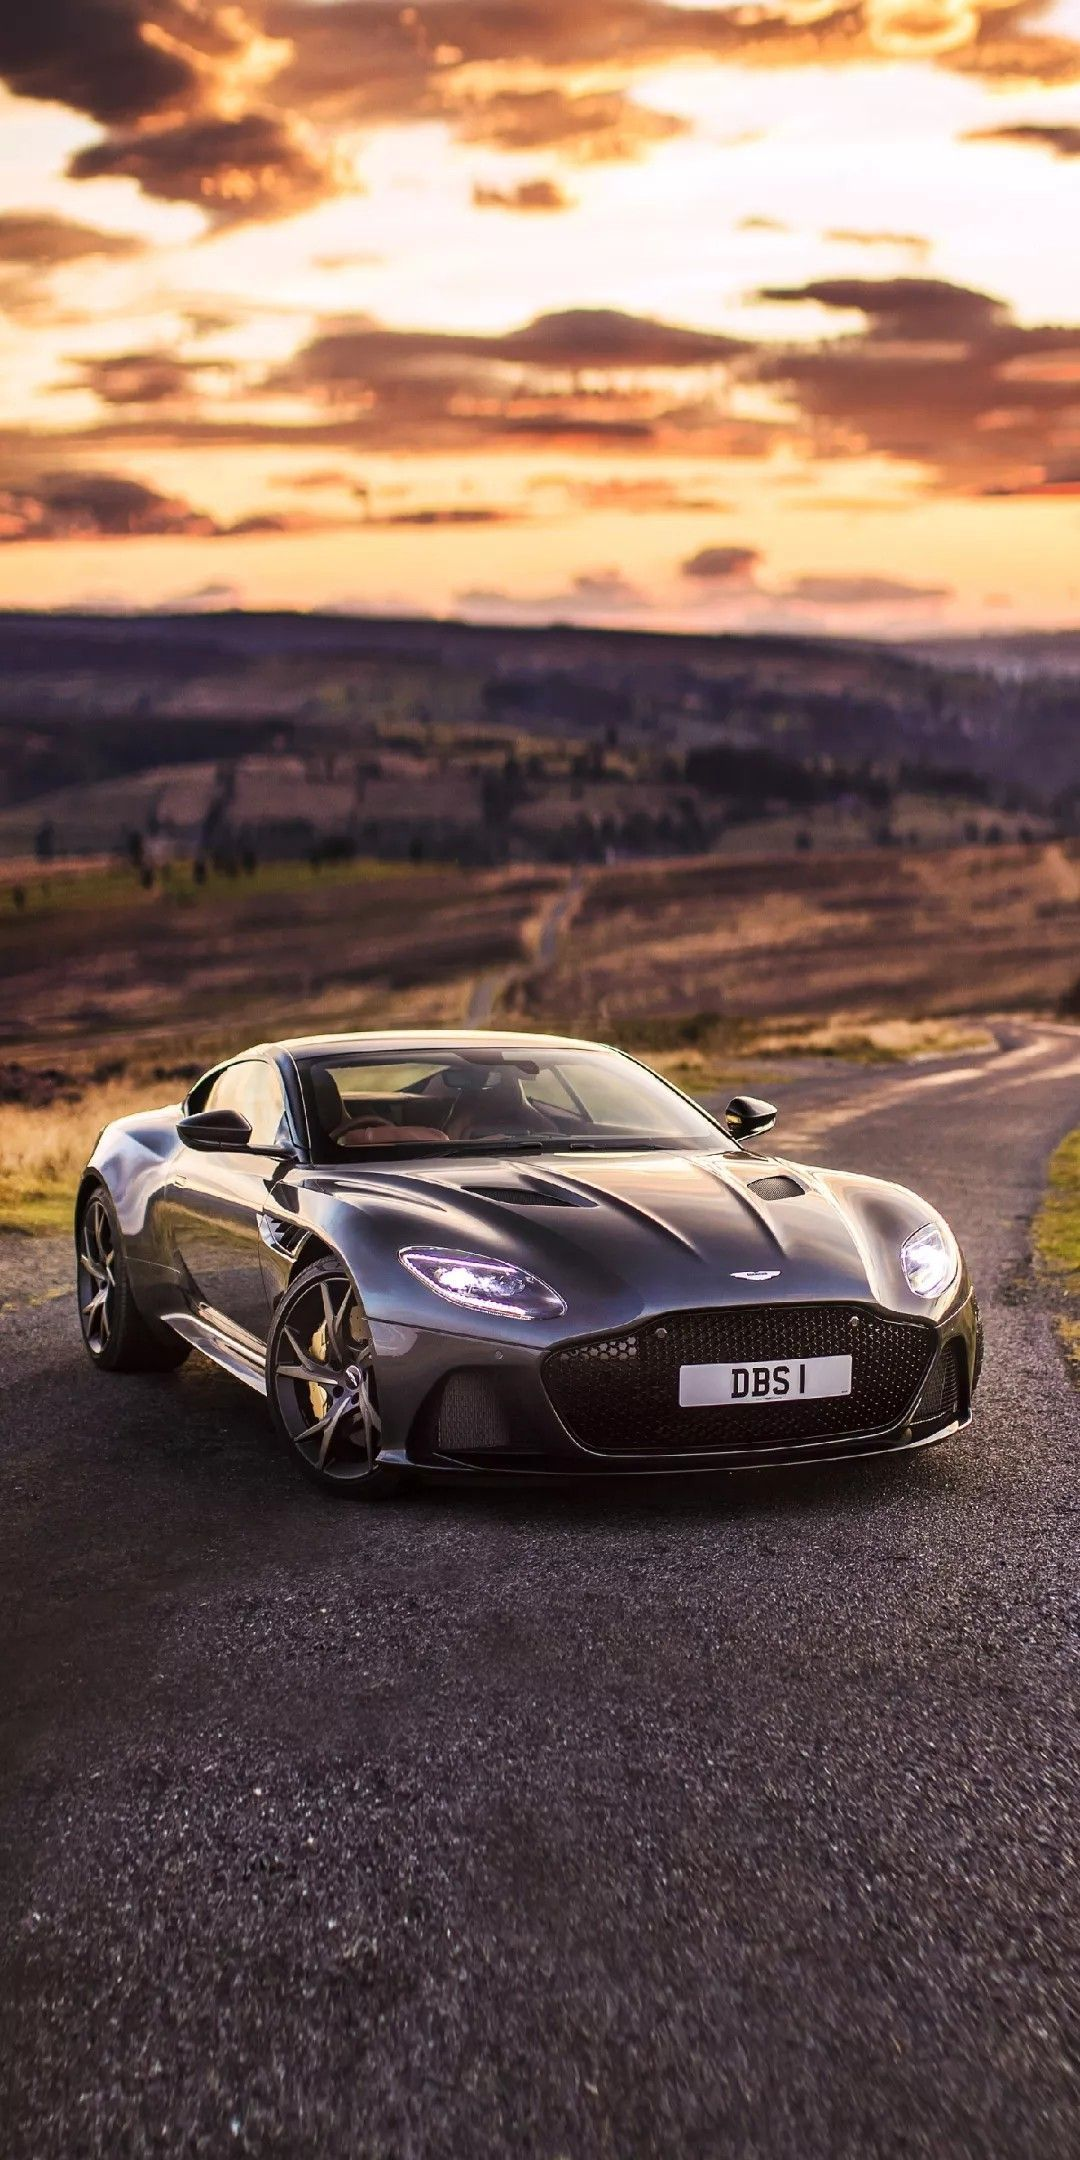 Pin By Milenium On Peru In 2020 Aston Martin Aston Martin Cars Best Luxury Cars